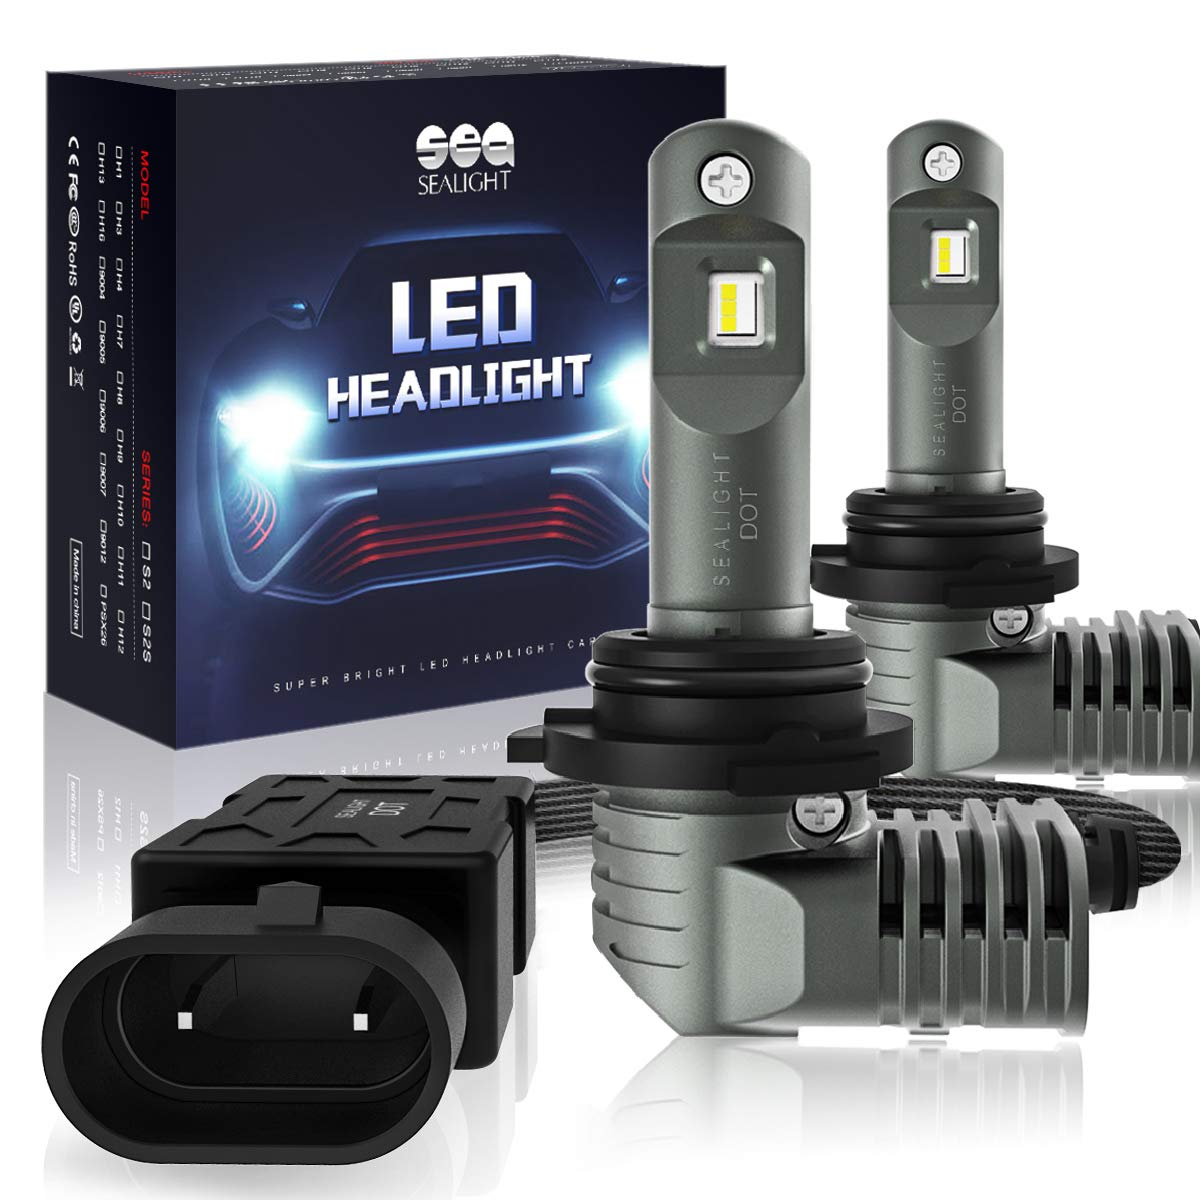 H11//H8//H9 LED Headlight Bulbs Low Beam//Fog Light with Fan SEALIGHT S2 Series Mini Design Upgraded CSP Chips 6000K Xenon white IP67-3 Yr Warranty 2 Pack